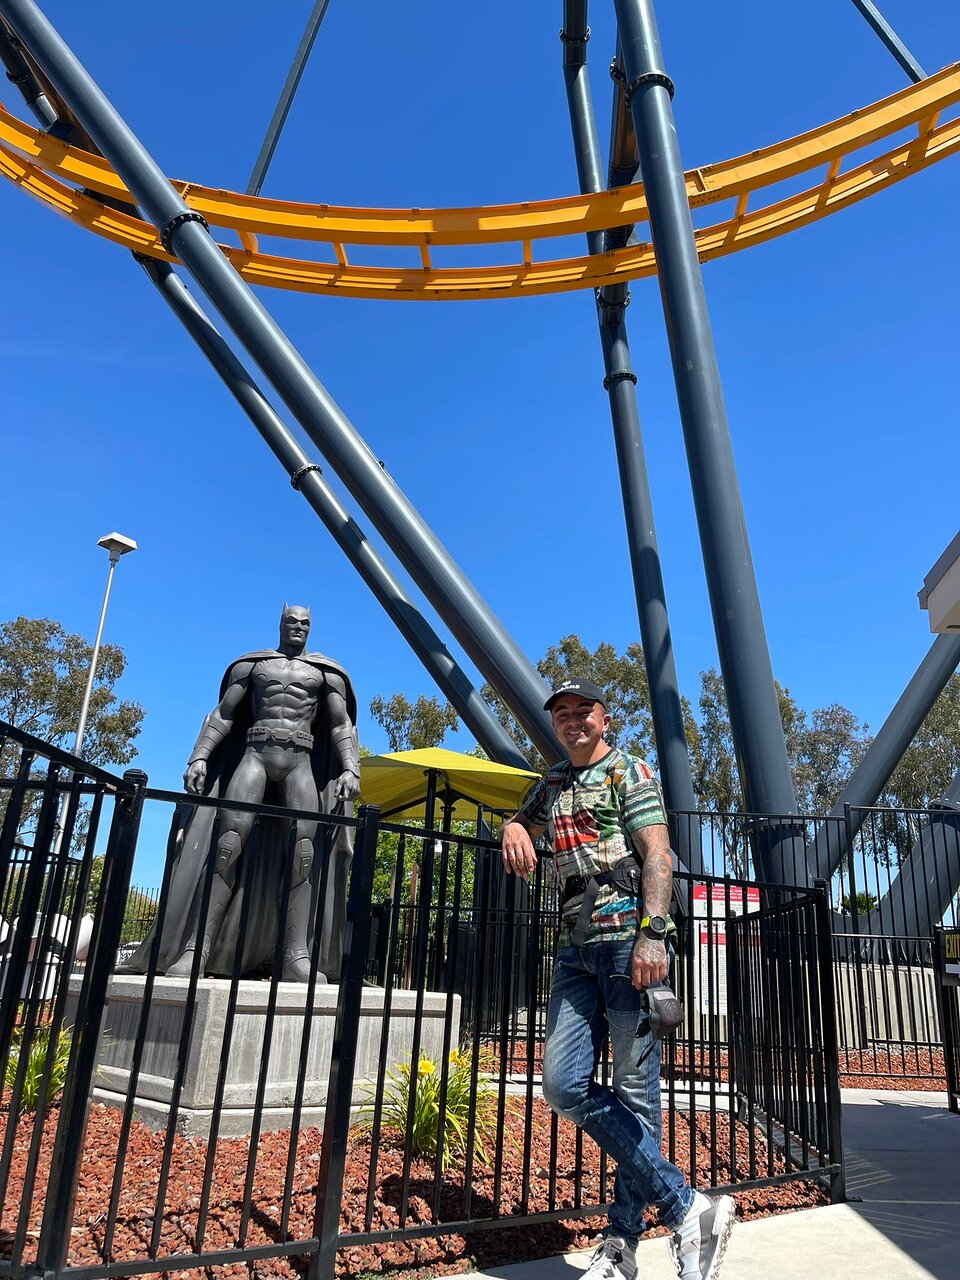 Six Flags Discovery Kingdom Vallejo 2021 All You Need To Know Before You Go With Photos Tripadvisor